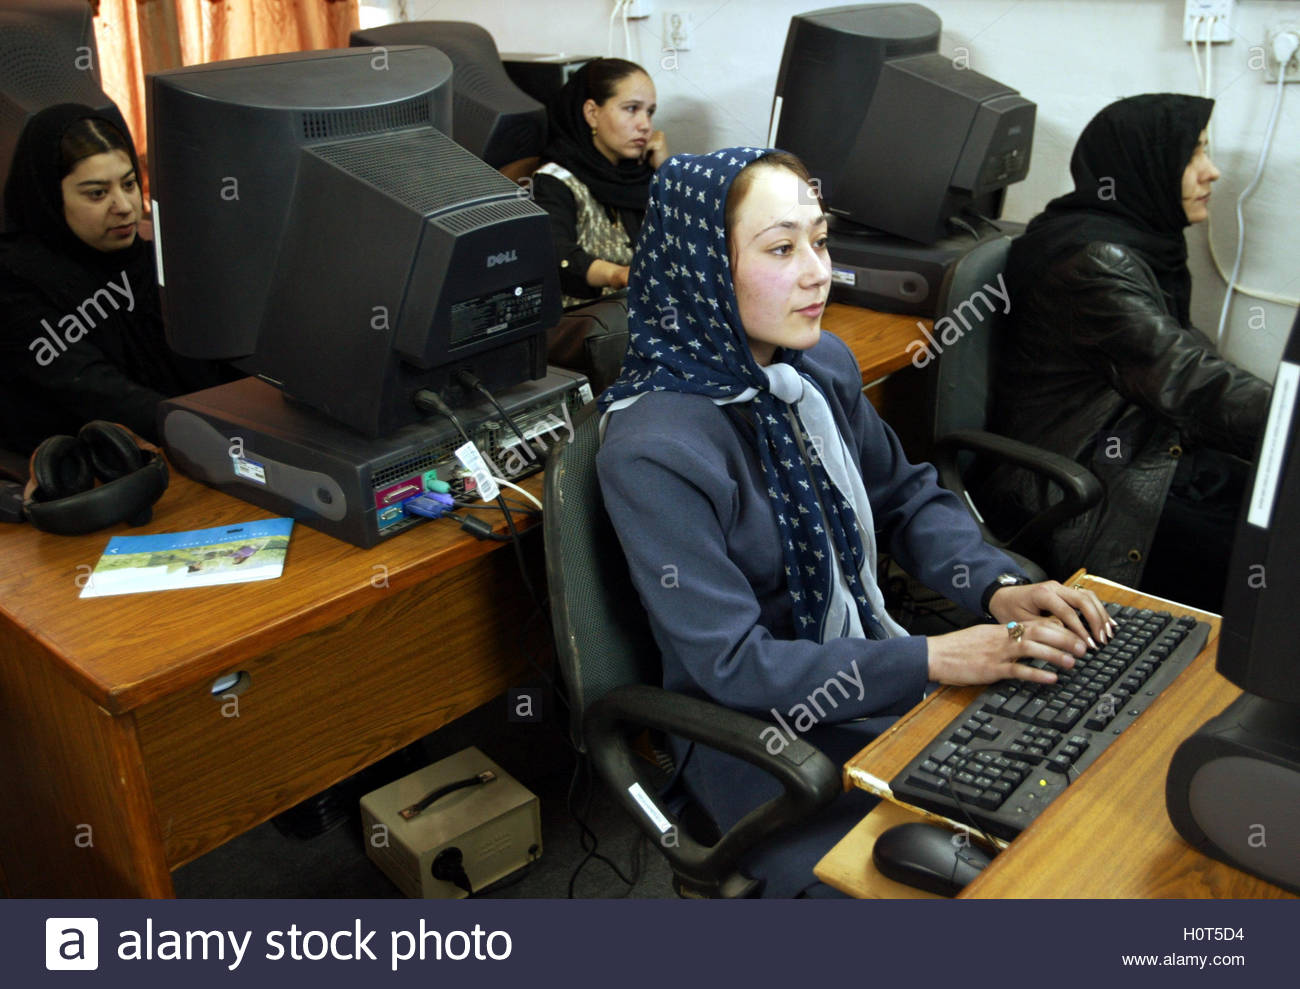 akbari stock photos akbari stock images alamy nabila akbari front and other young afghani girls sit before computer terminals at kabul